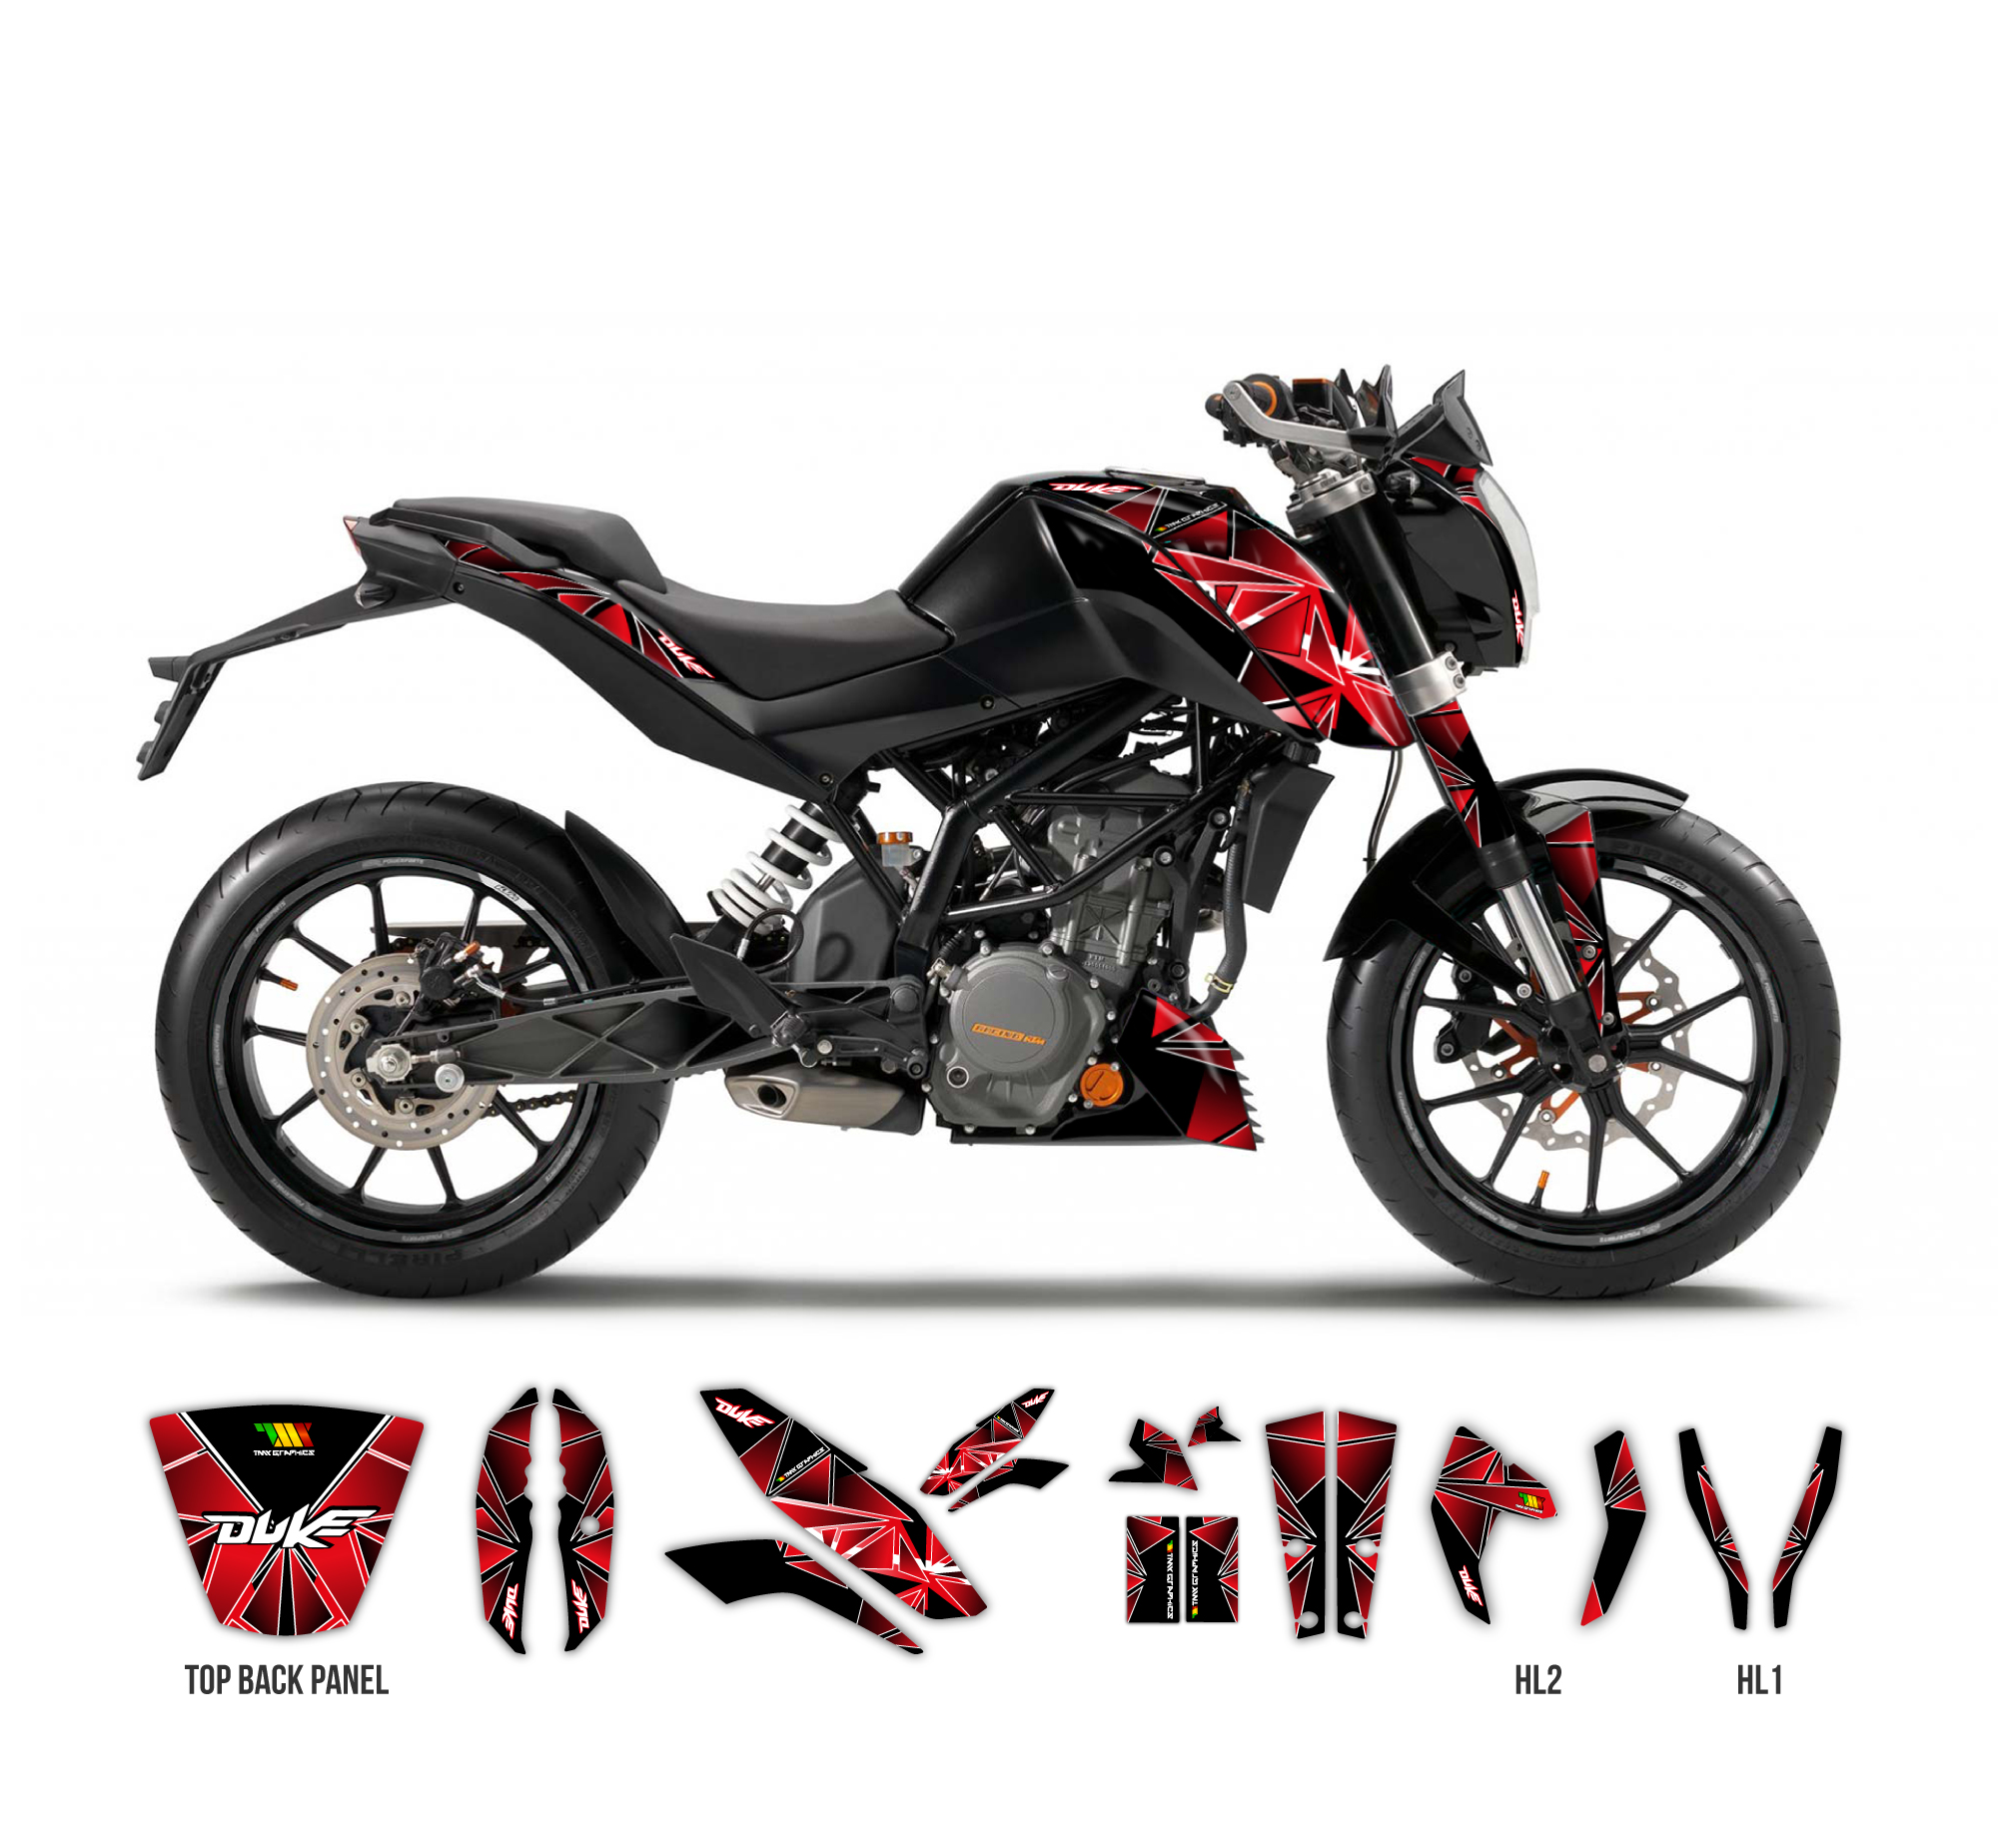 Ktm duke 125 390 diamond graphics series black tmx graphics